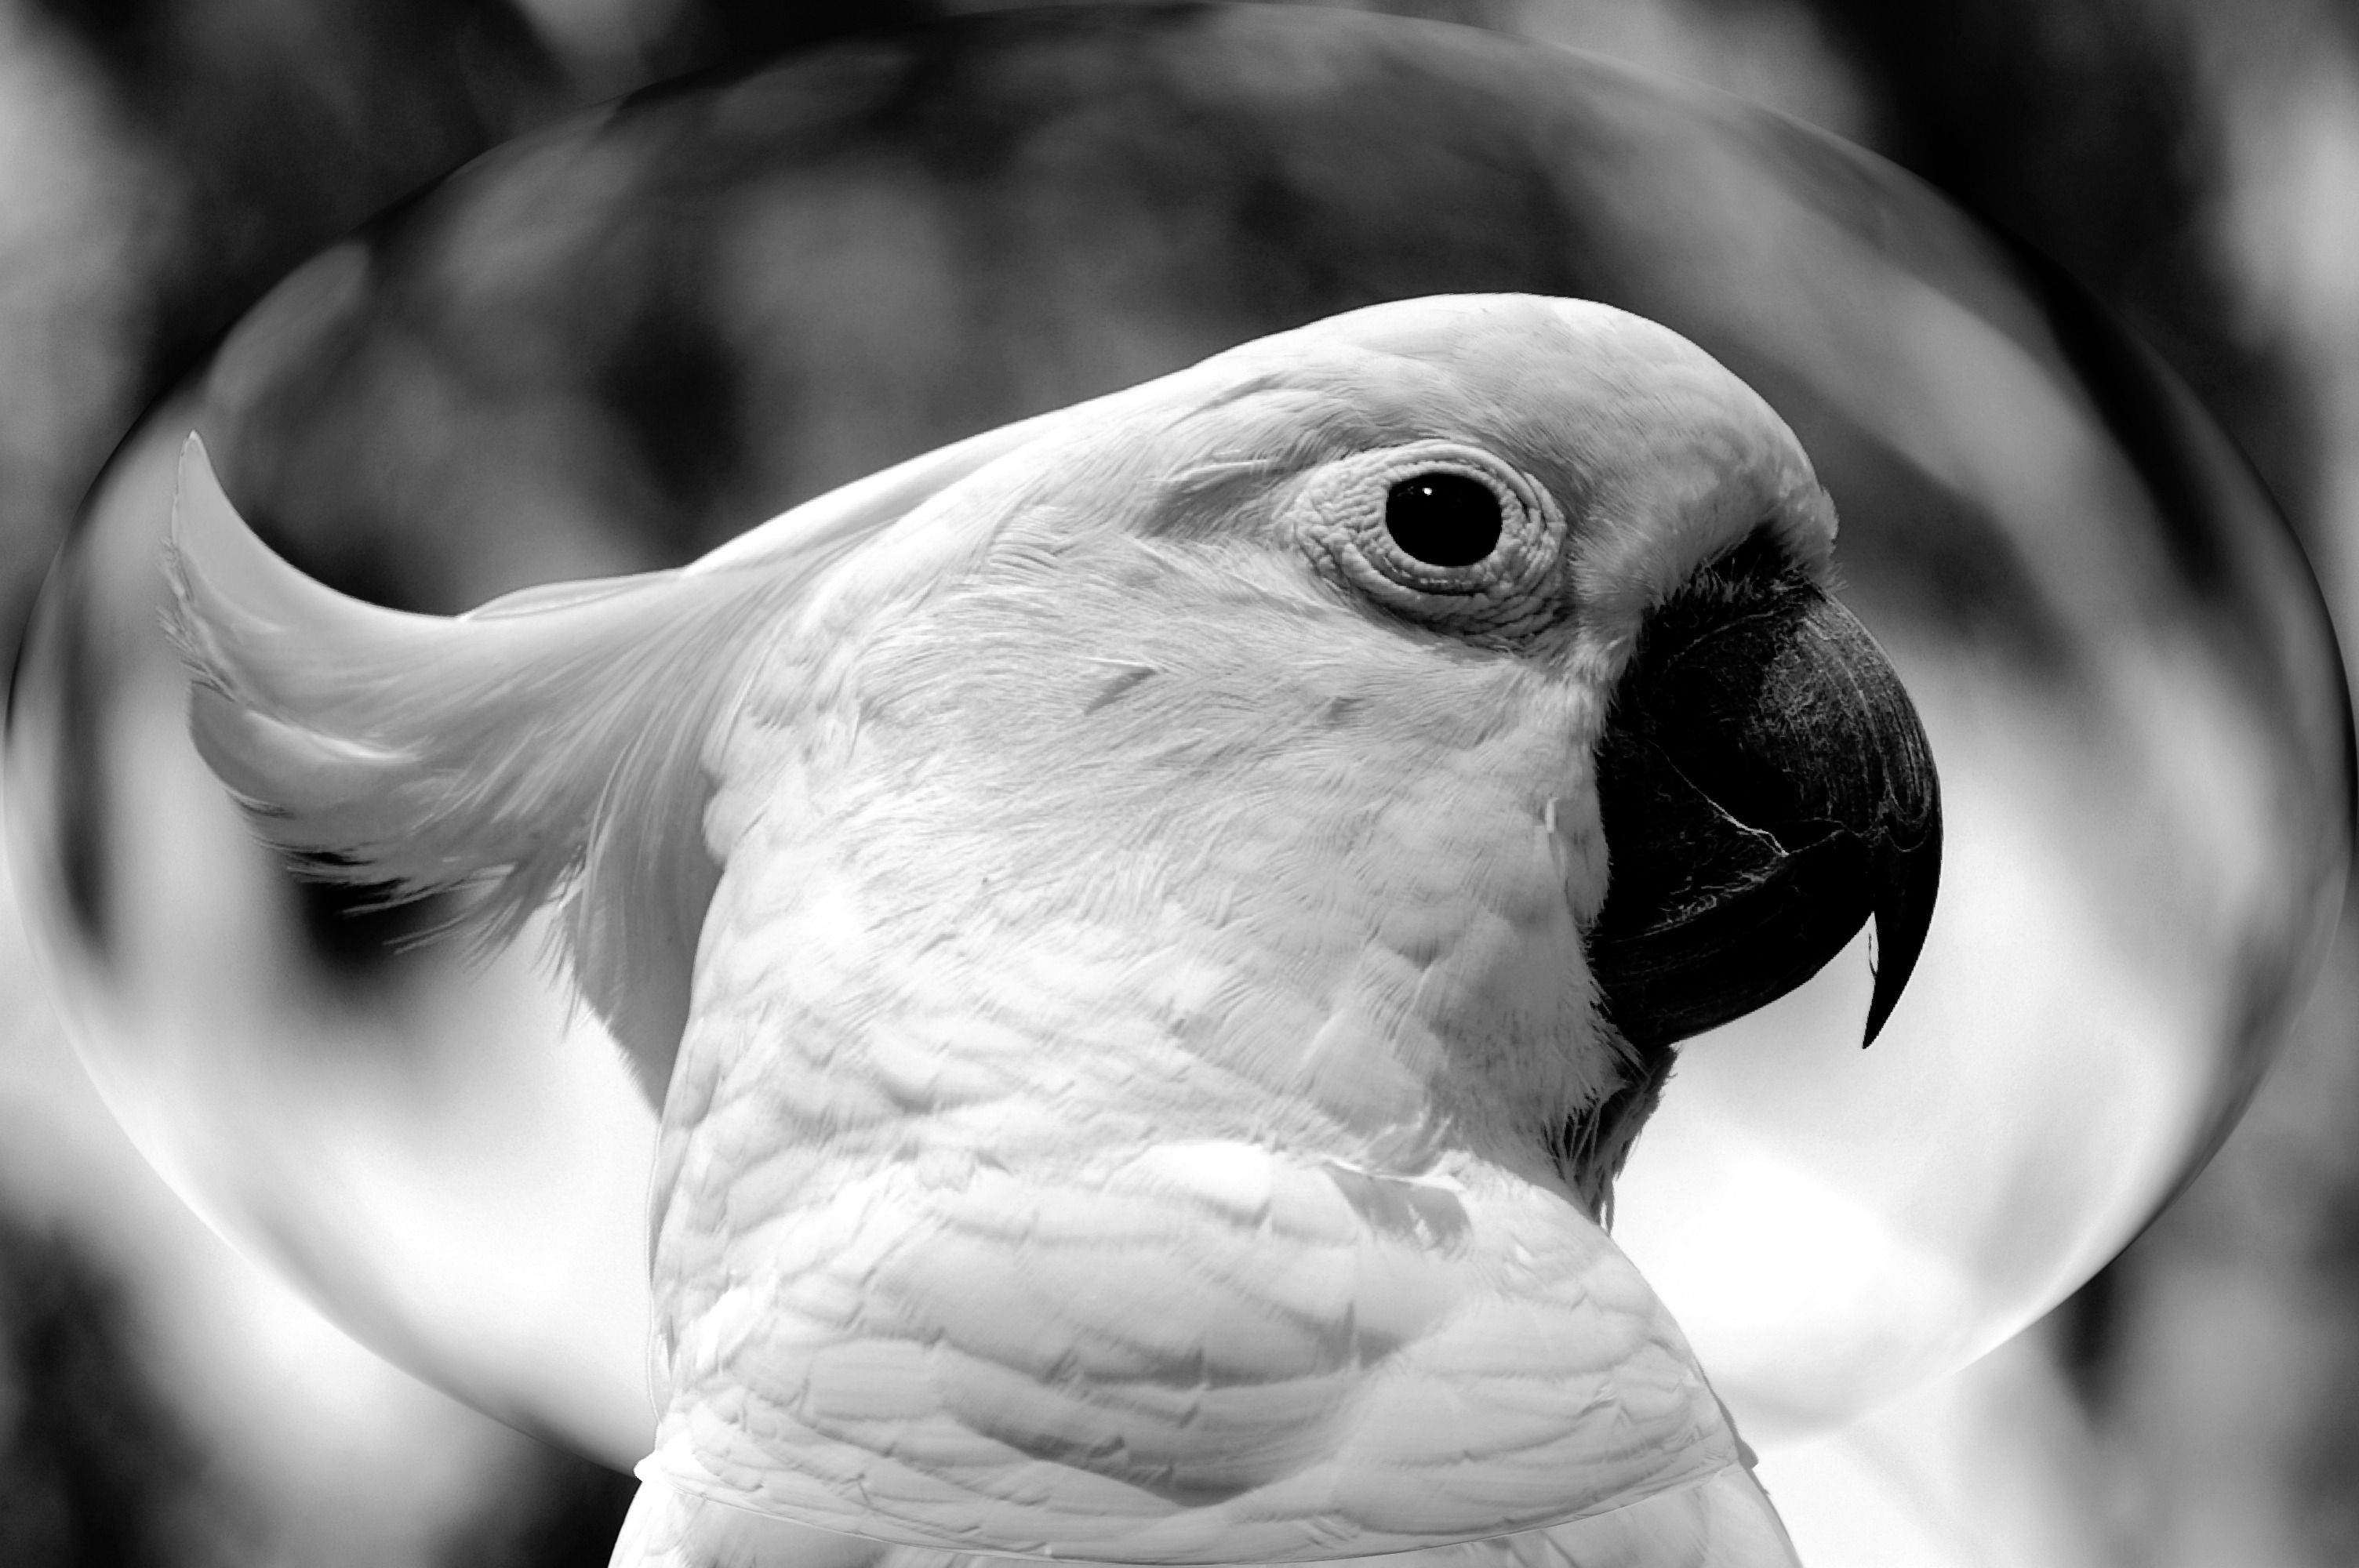 bird birds cockatoo cockatiel wildlife animals background animal parrot beak domain sulphur crested close wild 66kb monochrome fauna vertebrate manipulation